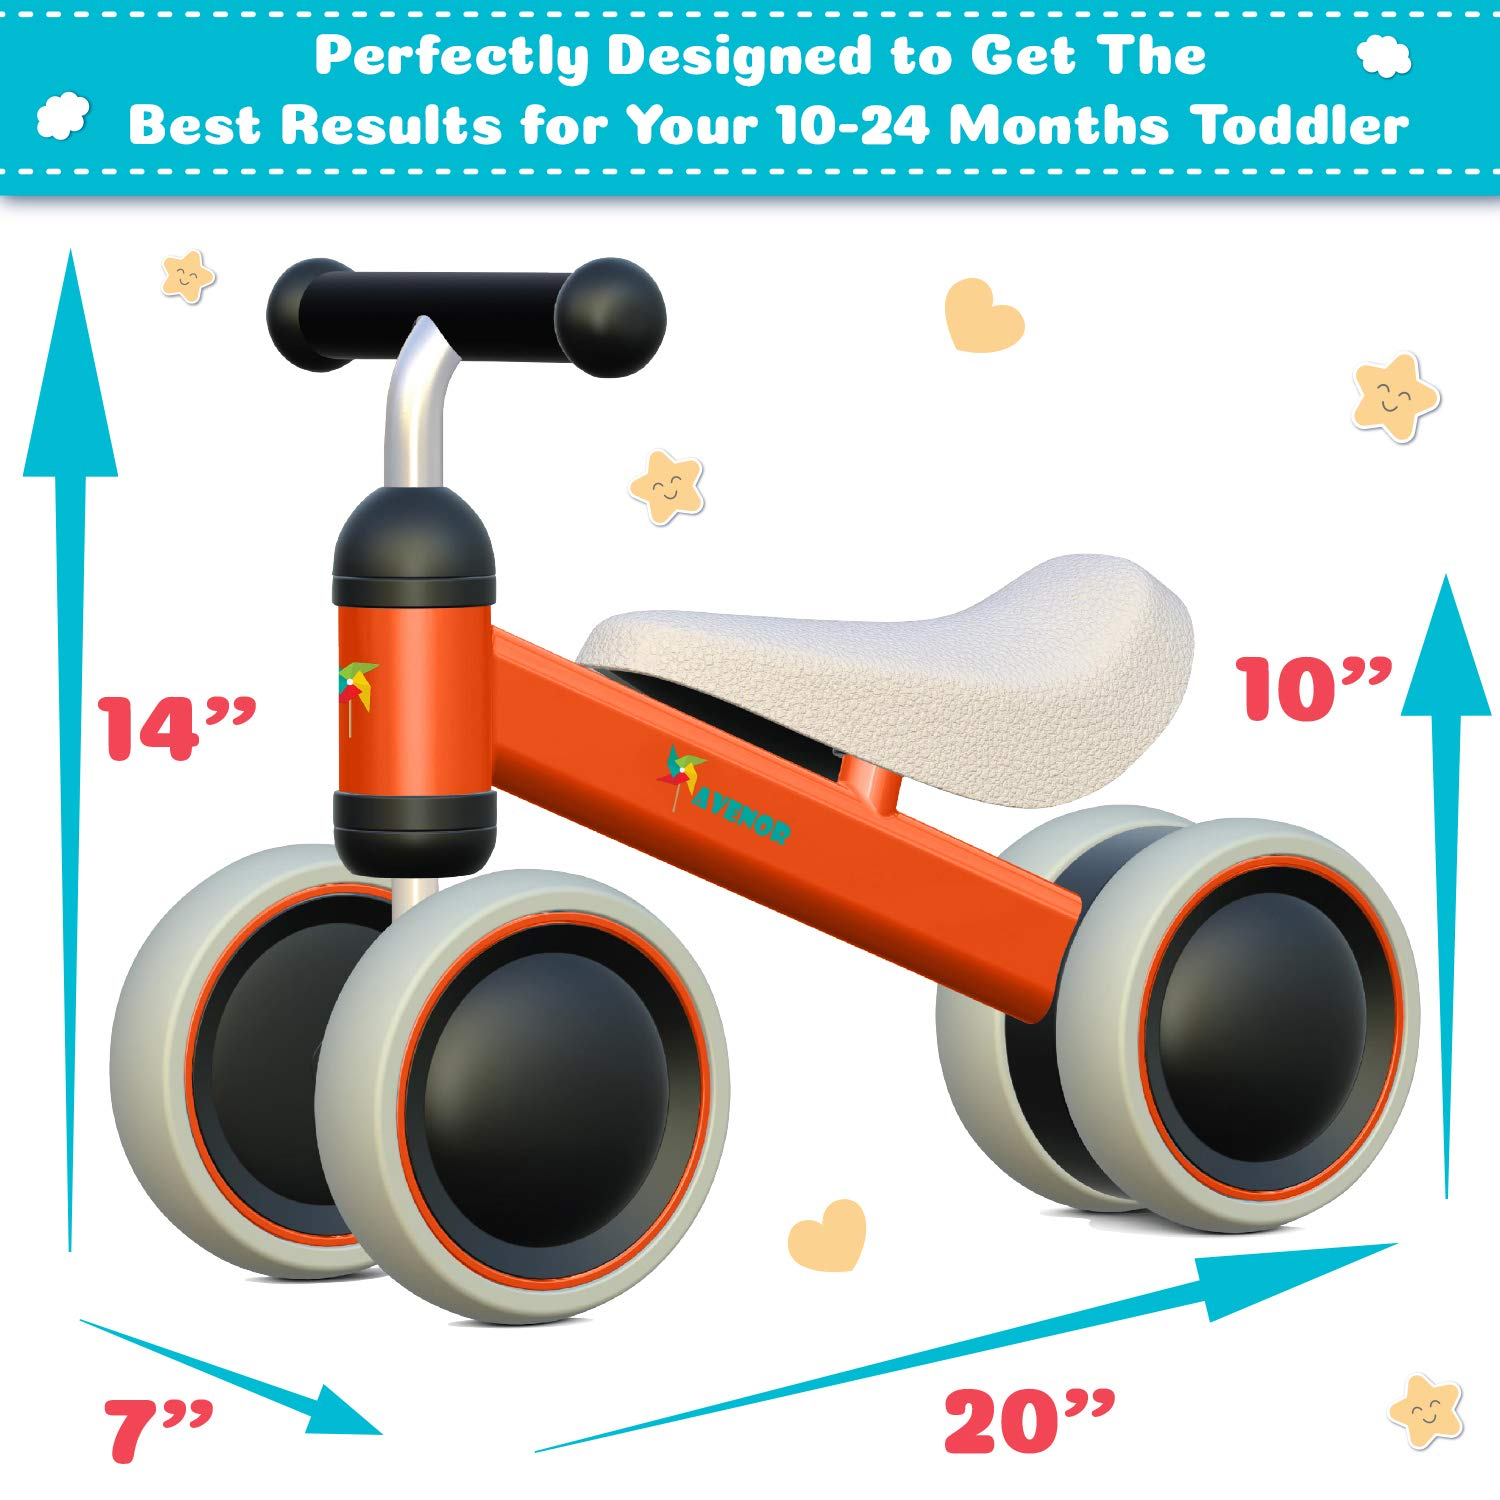 Avenor Baby Balance Bike - Baby Bicycle for 6-24 Months, Sturdy Balance Bike for 1 Year Old, Perfect as First Bike or Birthday Gift, Safe Riding Toys for 1 Year Old Boy Girl Ideal Baby Bike (Orange) by Avenor (Image #7)